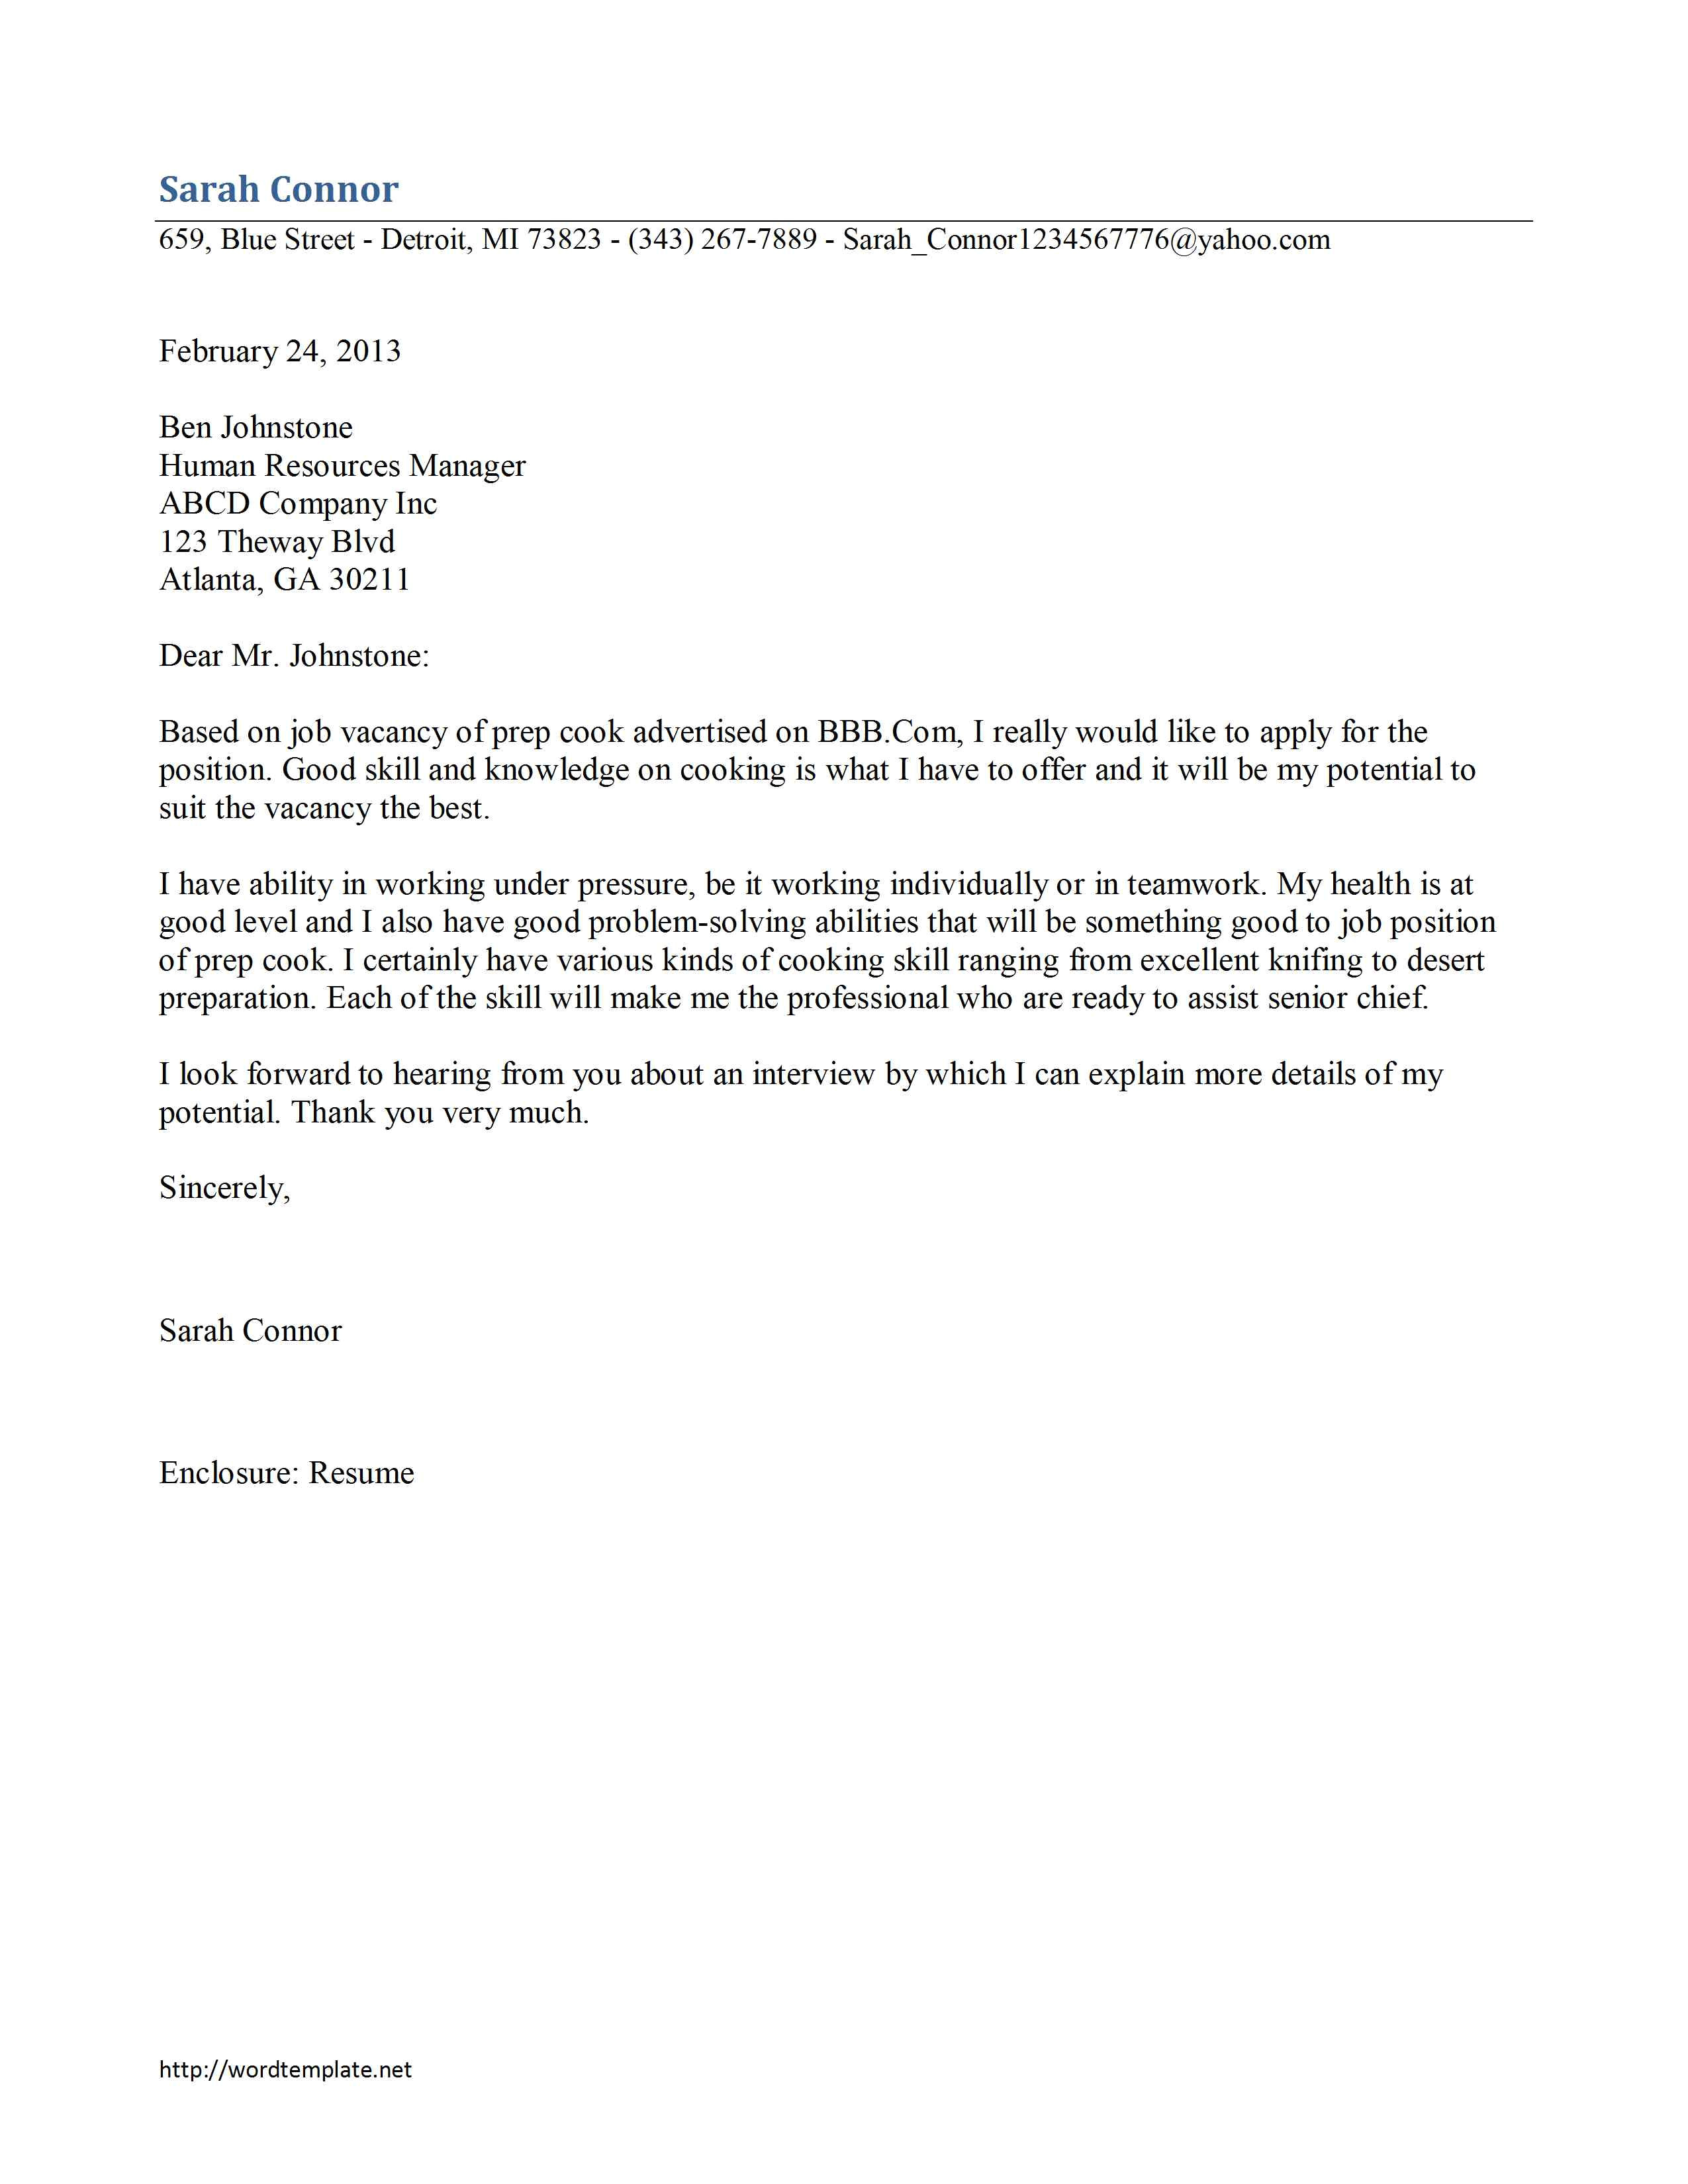 Cover Letter for A Cook Position Prep Cook Cover Letter Template